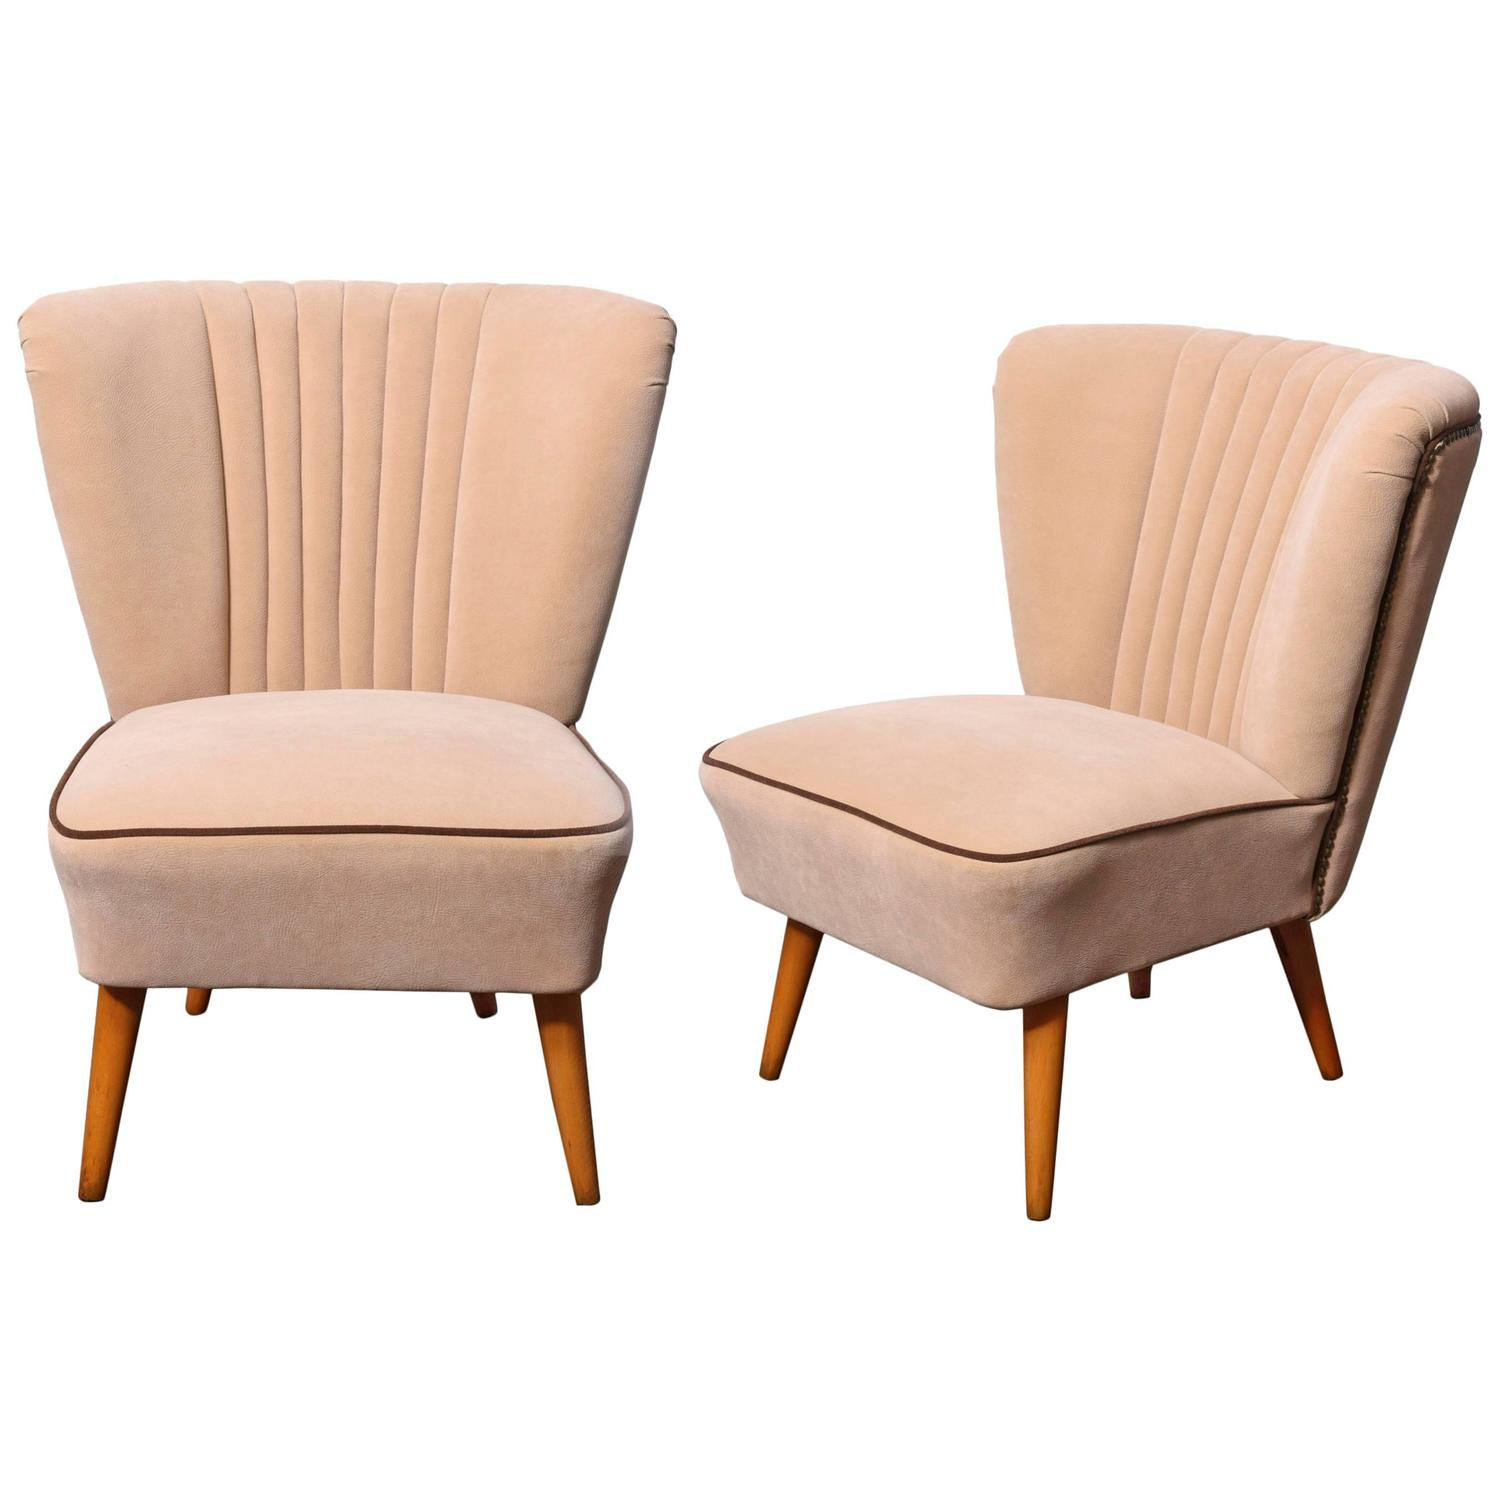 Cocktail chairs for sale at 1stdibs for Cocktail tables and chairs for sale